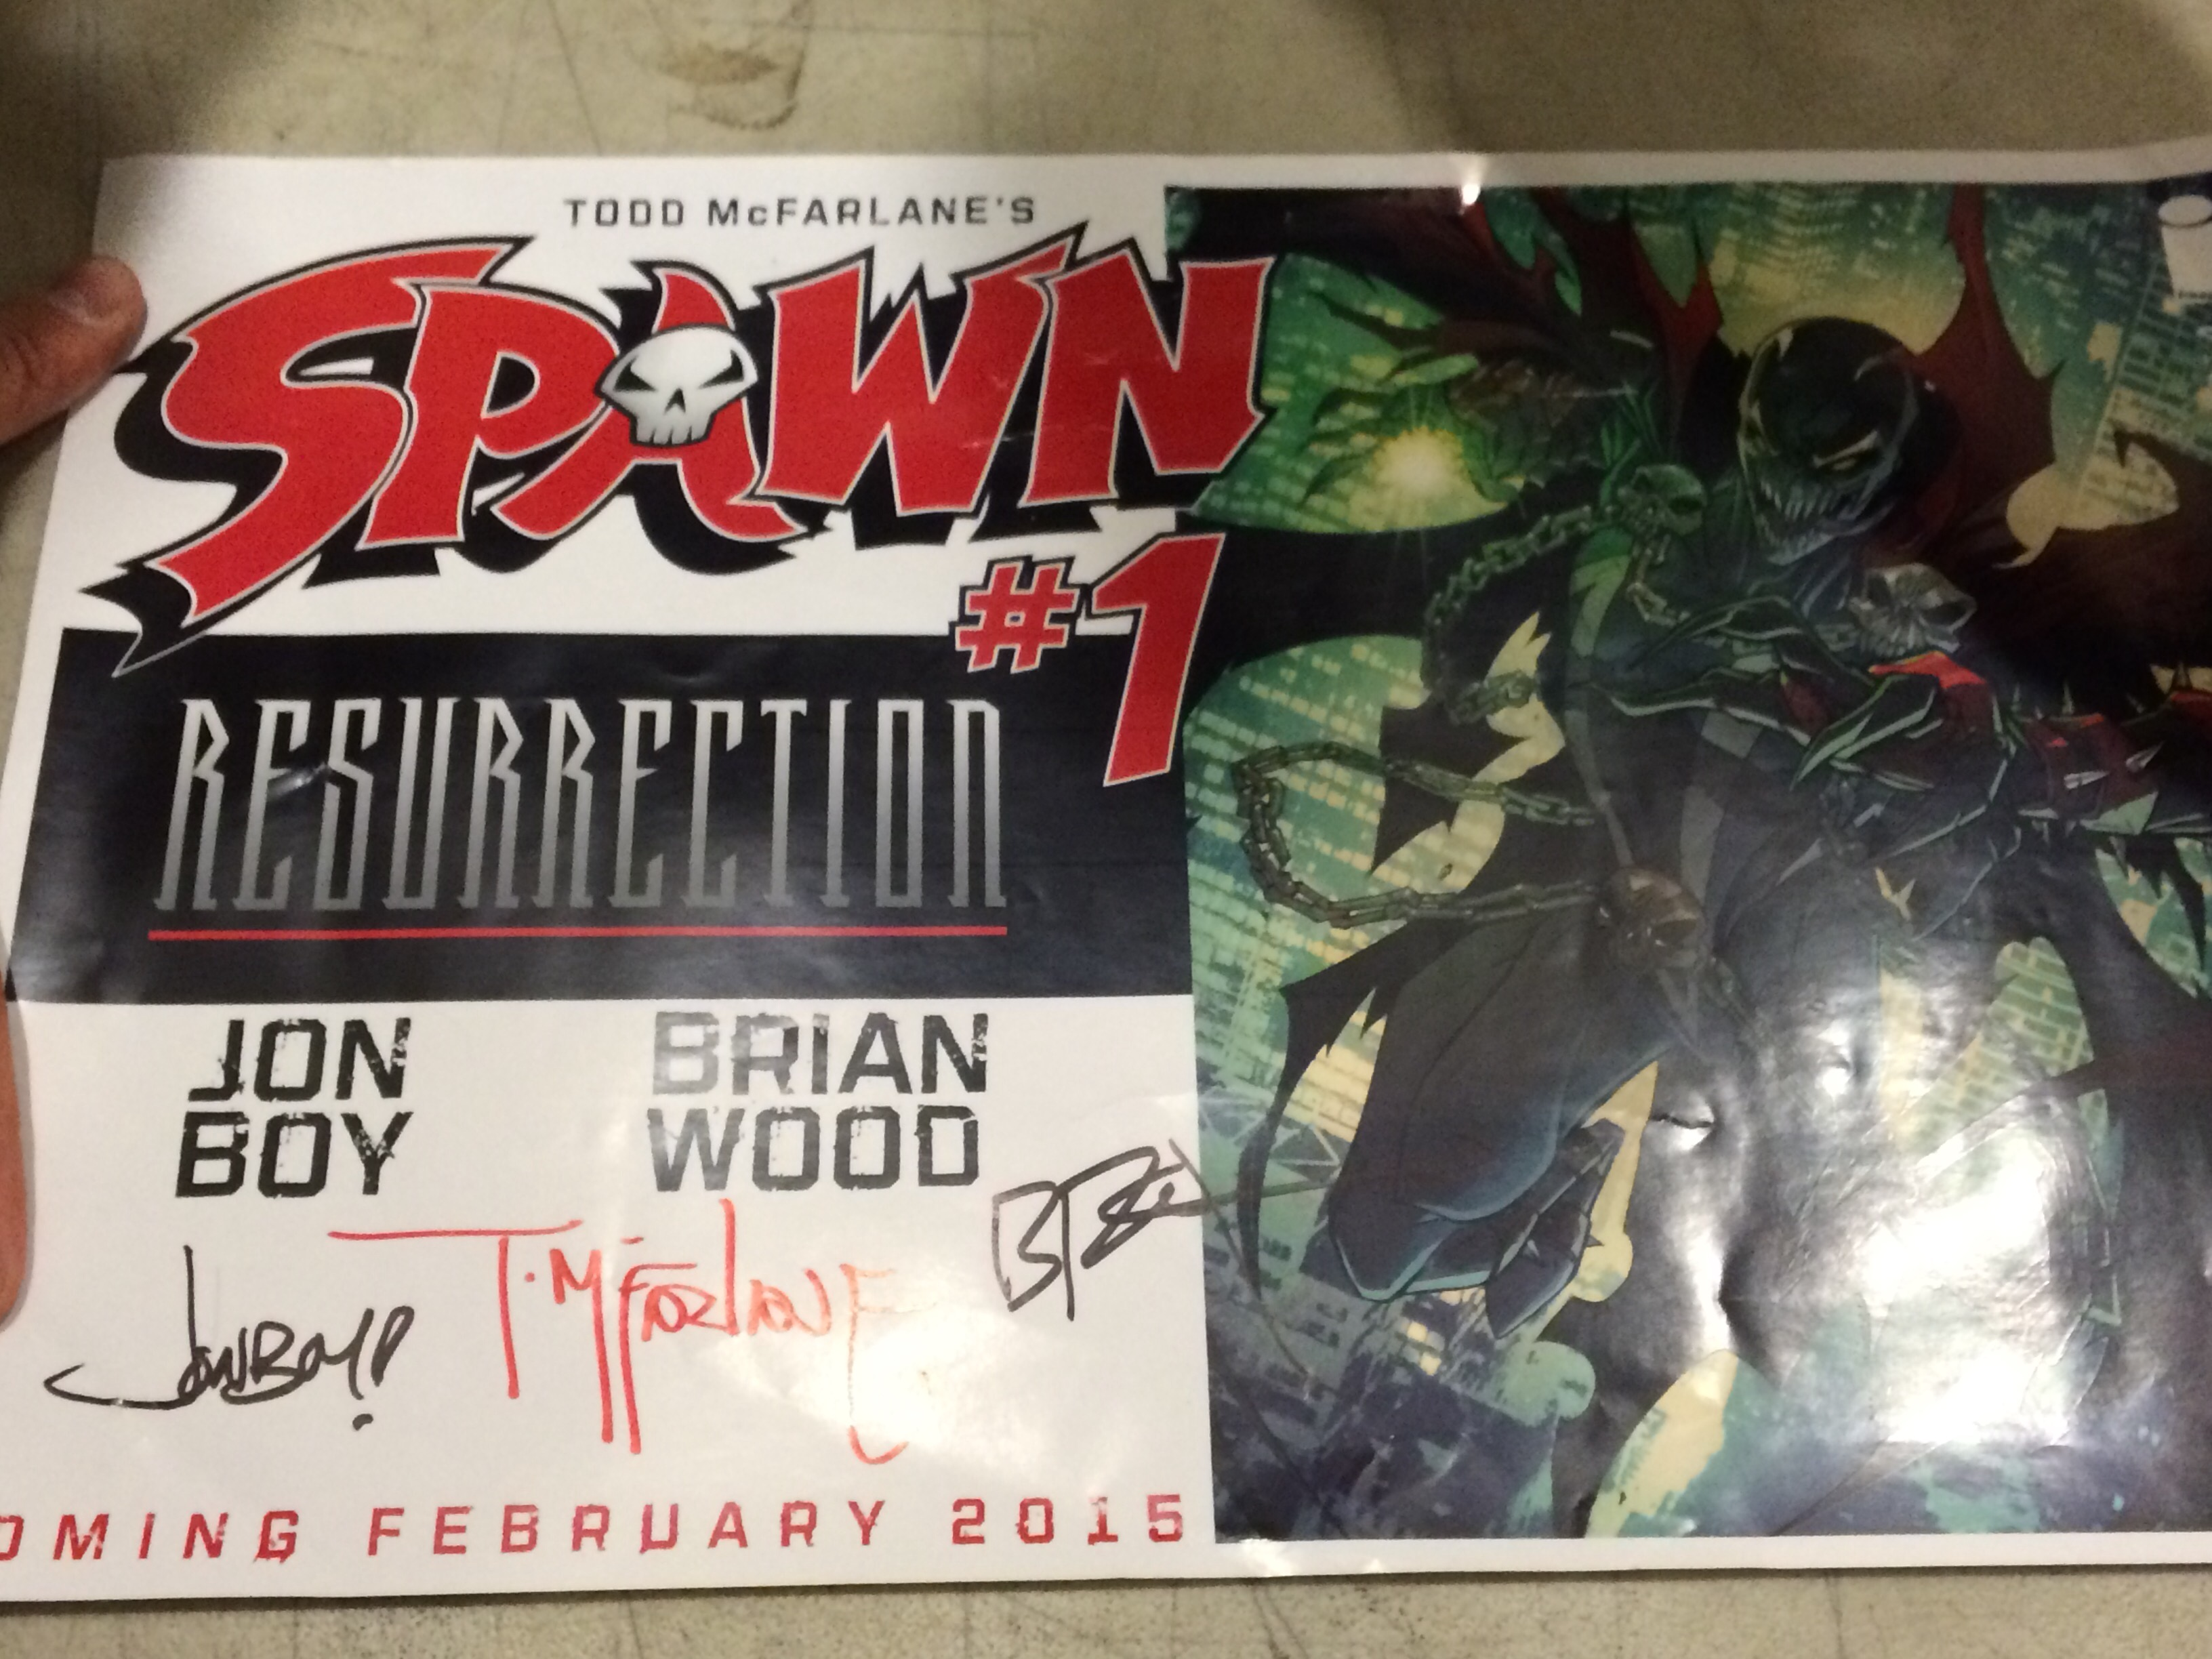 Signed Todd McFarlane poster